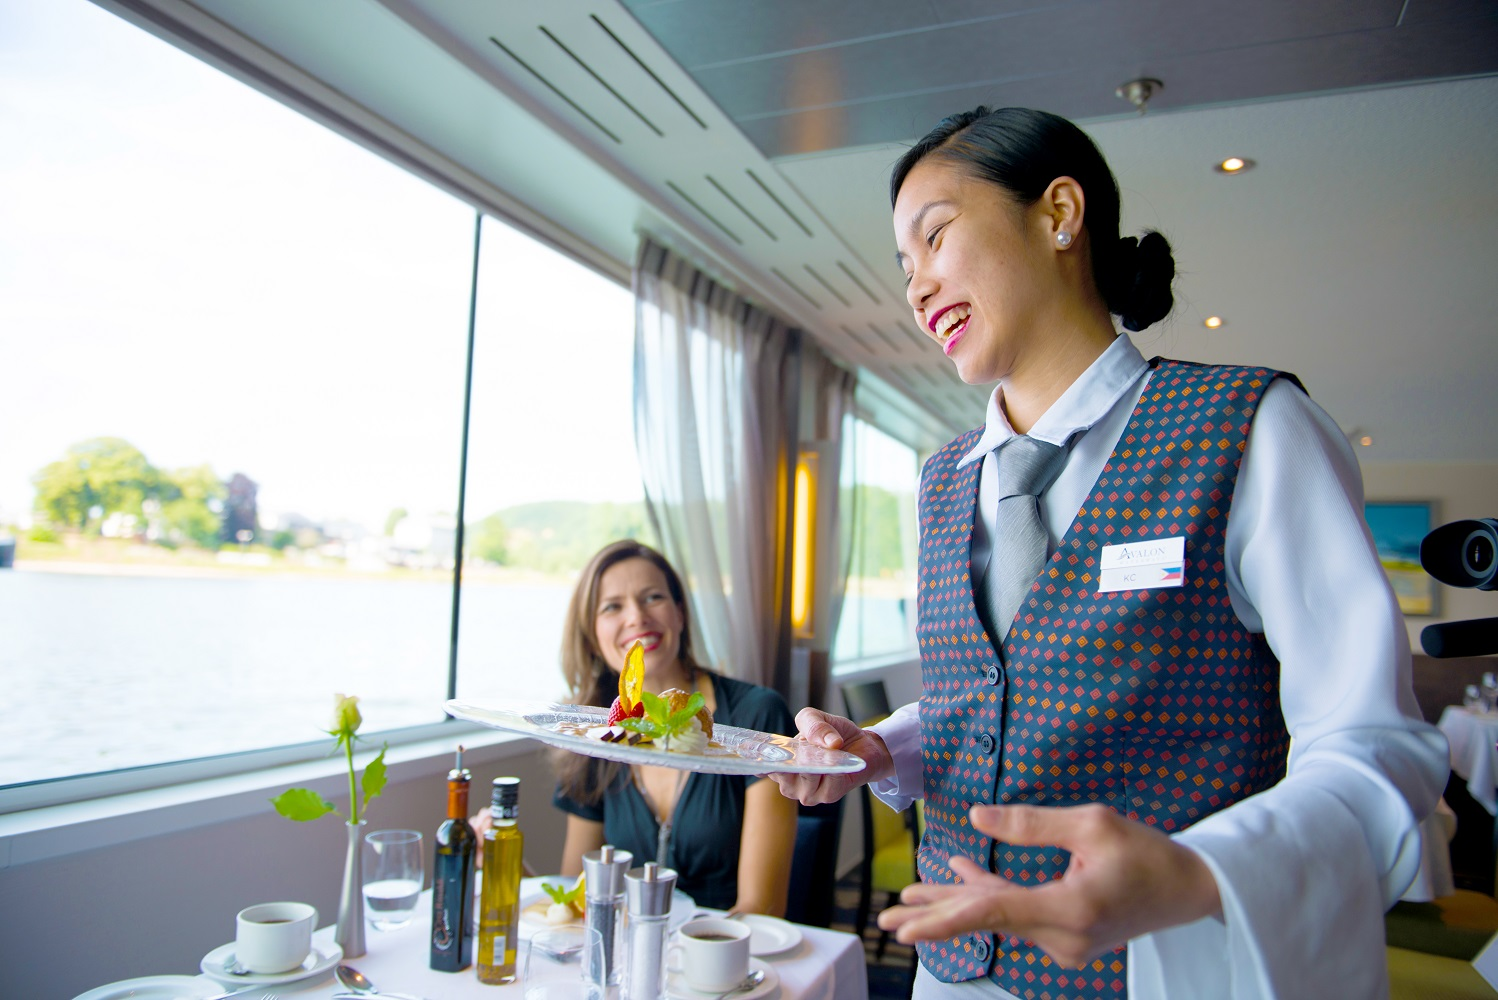 Avalon Christmas Market Cruise 2020 Avalon Waterways Introduces Four day River Cruises For 2020   Our